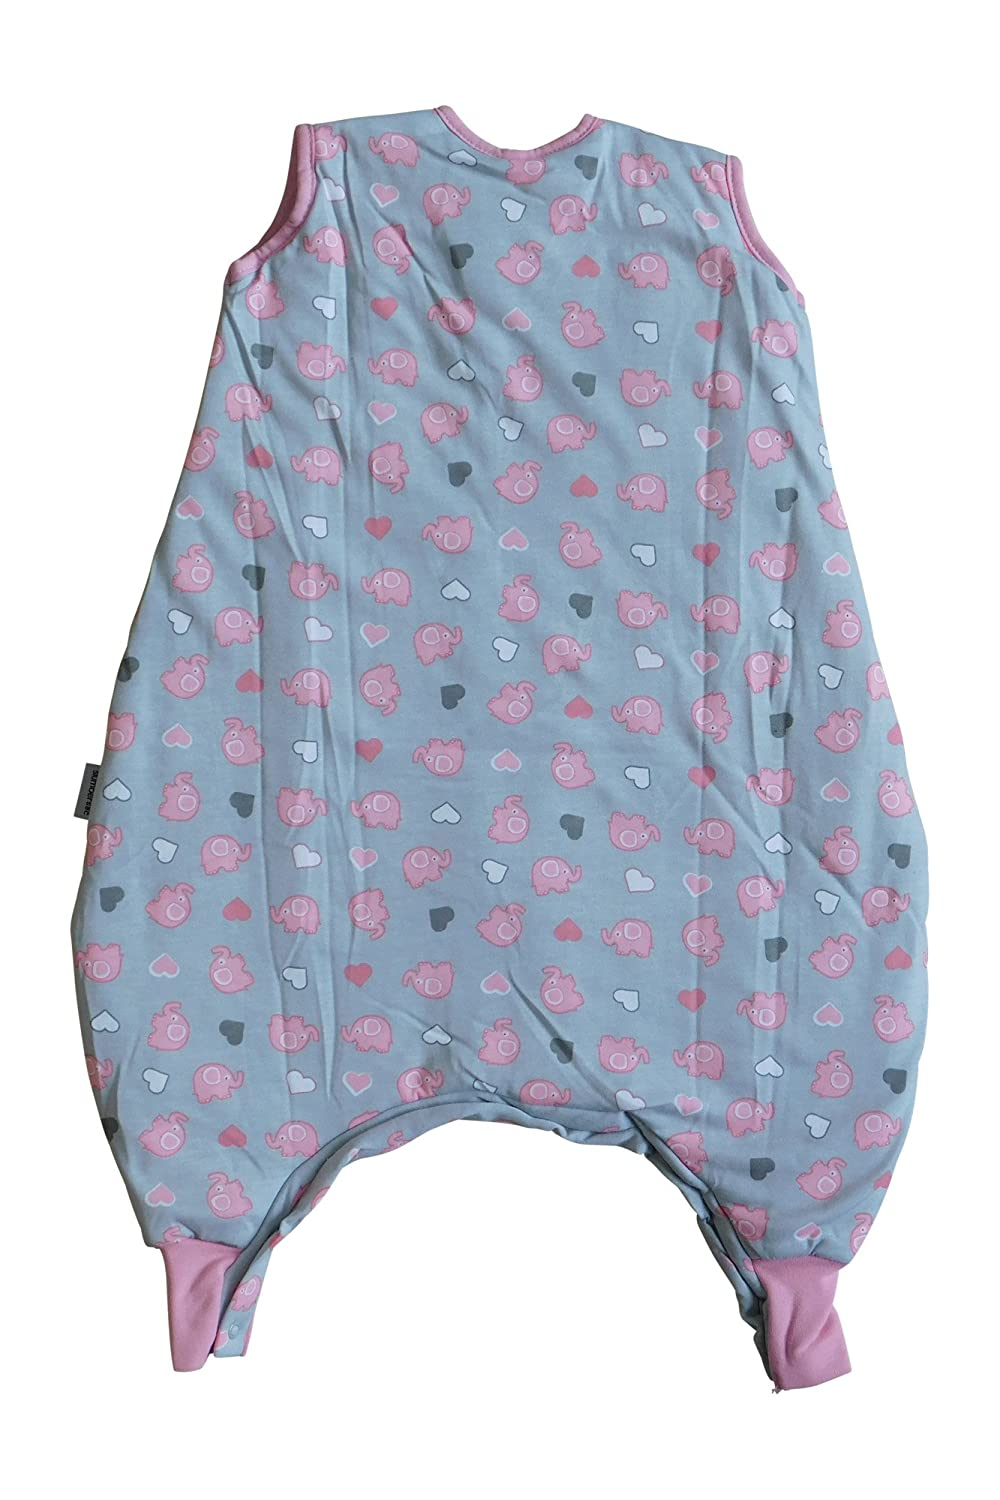 Slumbersac Standard Standard Sleeping Bag with Feet and Poppers 2.5 Tog 6-12 months//70cm Simply Zoo Animals